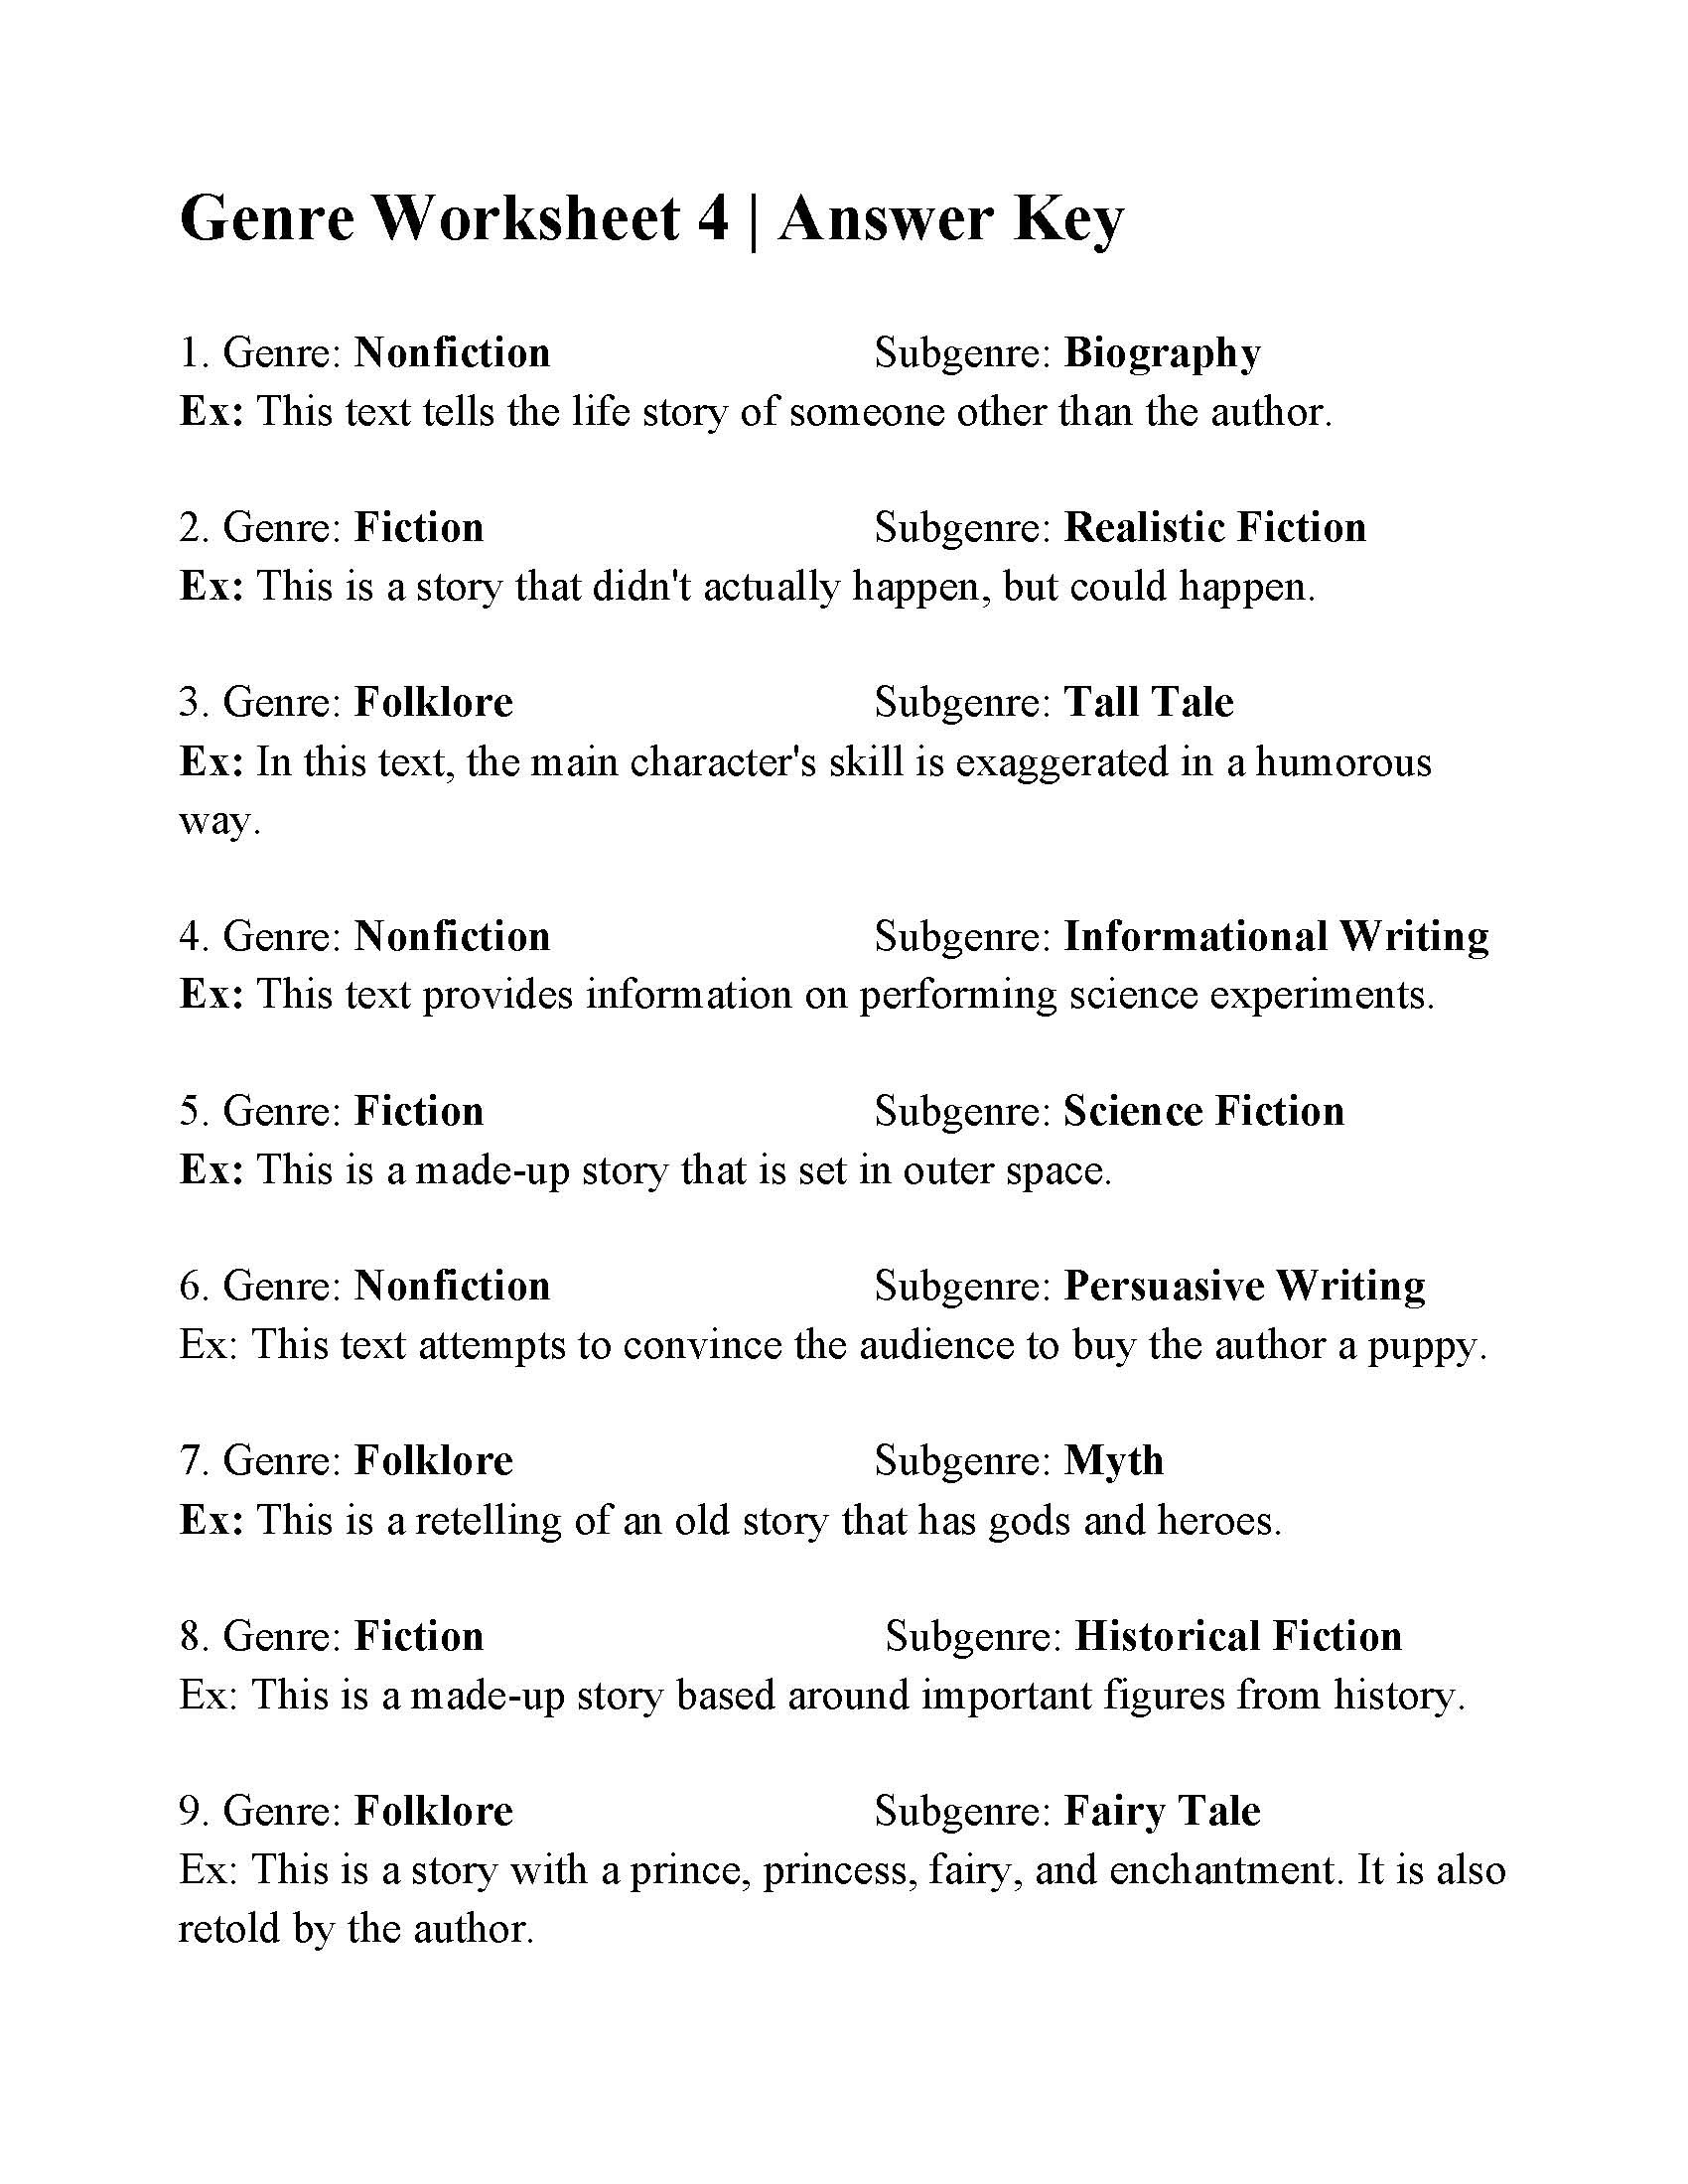 Genre Worksheets 4th Grade Historical Fiction Worksheet